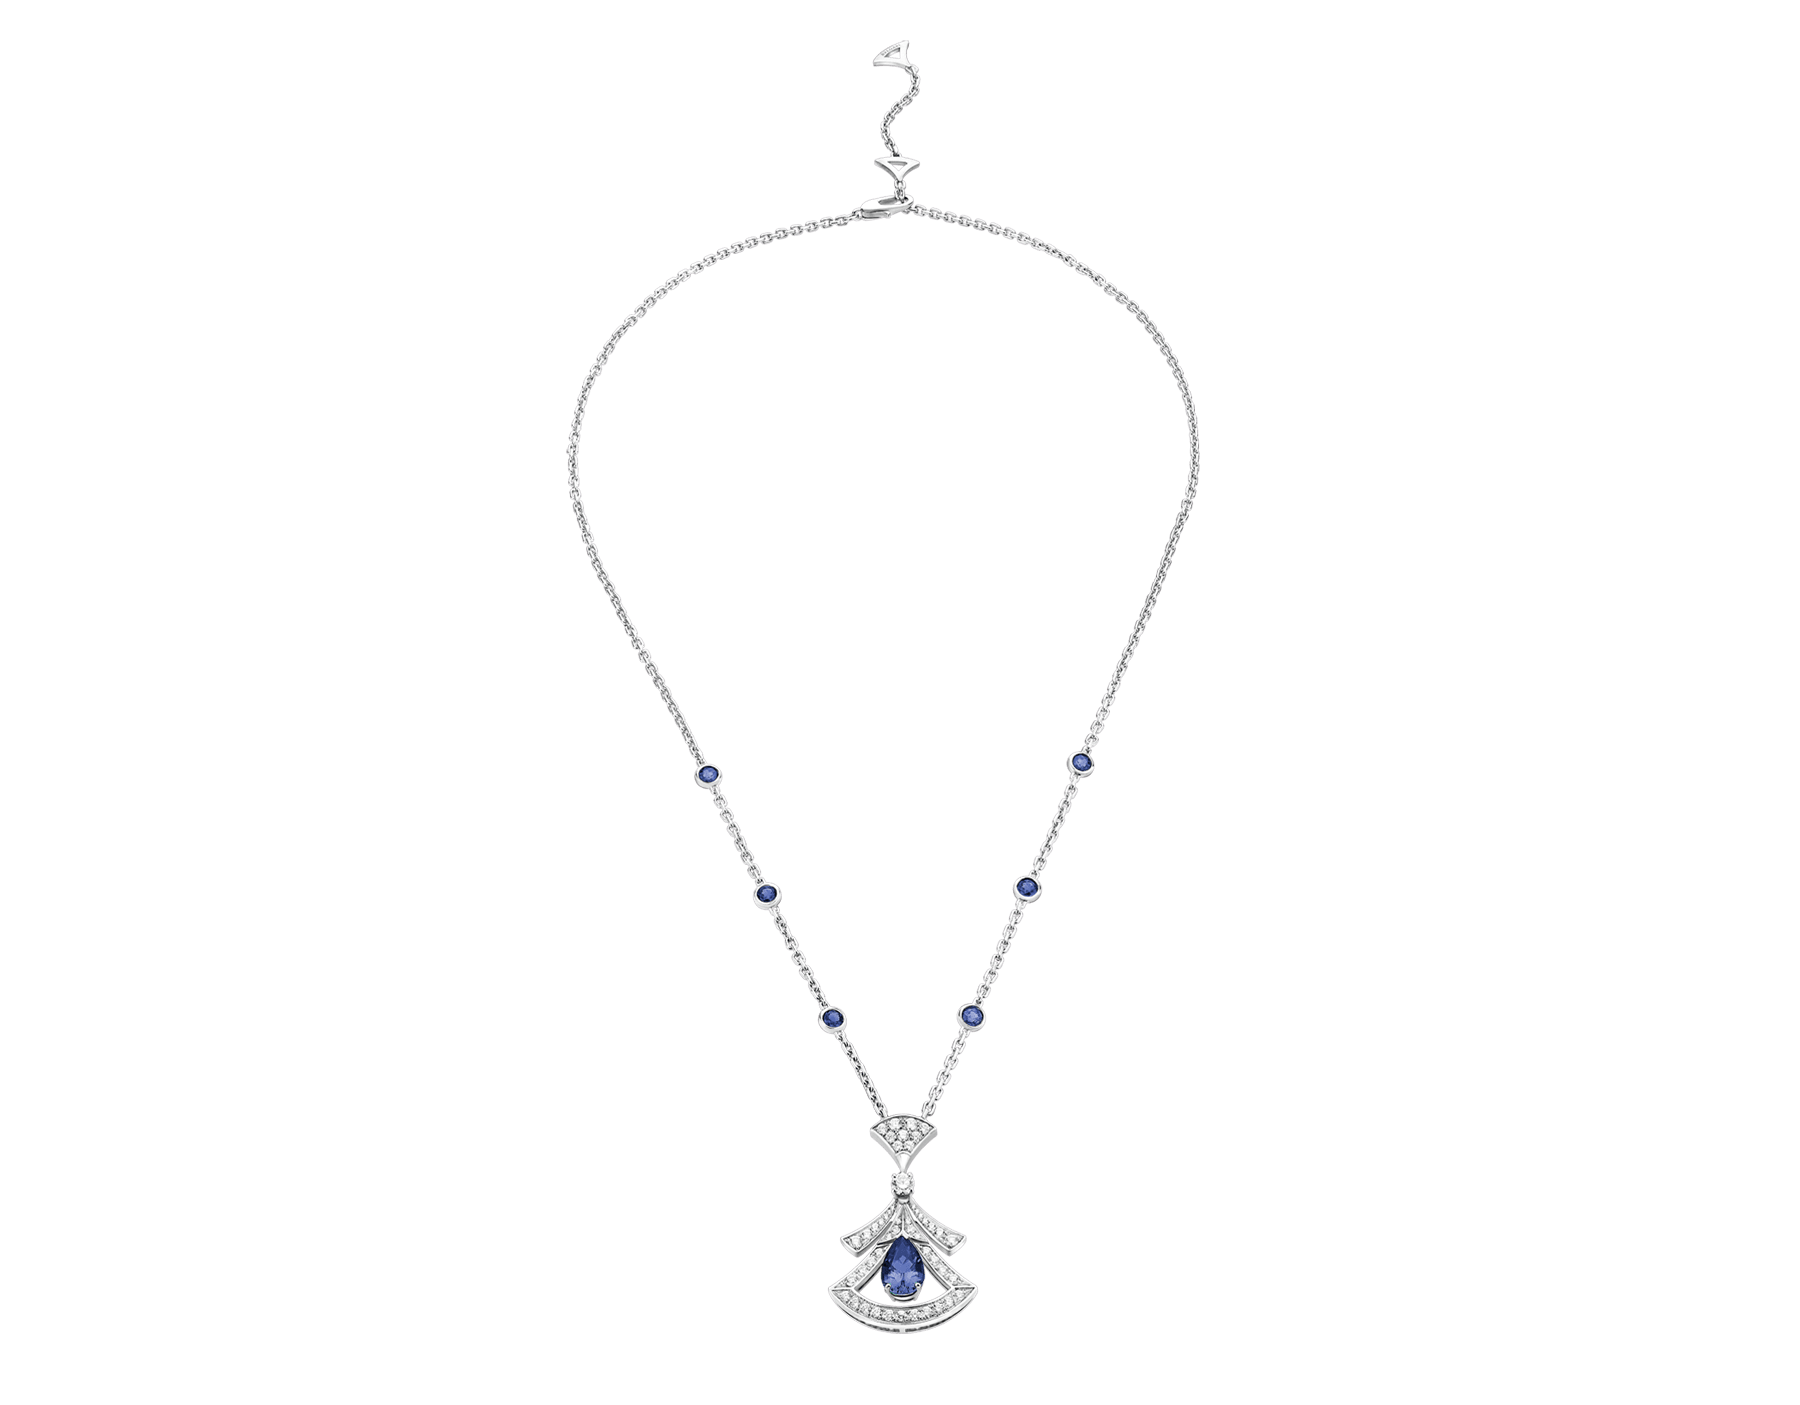 DIVAS' DREAM 18 kt white gold openwork necklace set with a pear-shaped sapphire, round brilliant-cut sapphires, a round brilliant-cut diamond and pavé diamonds. 357325 image 2